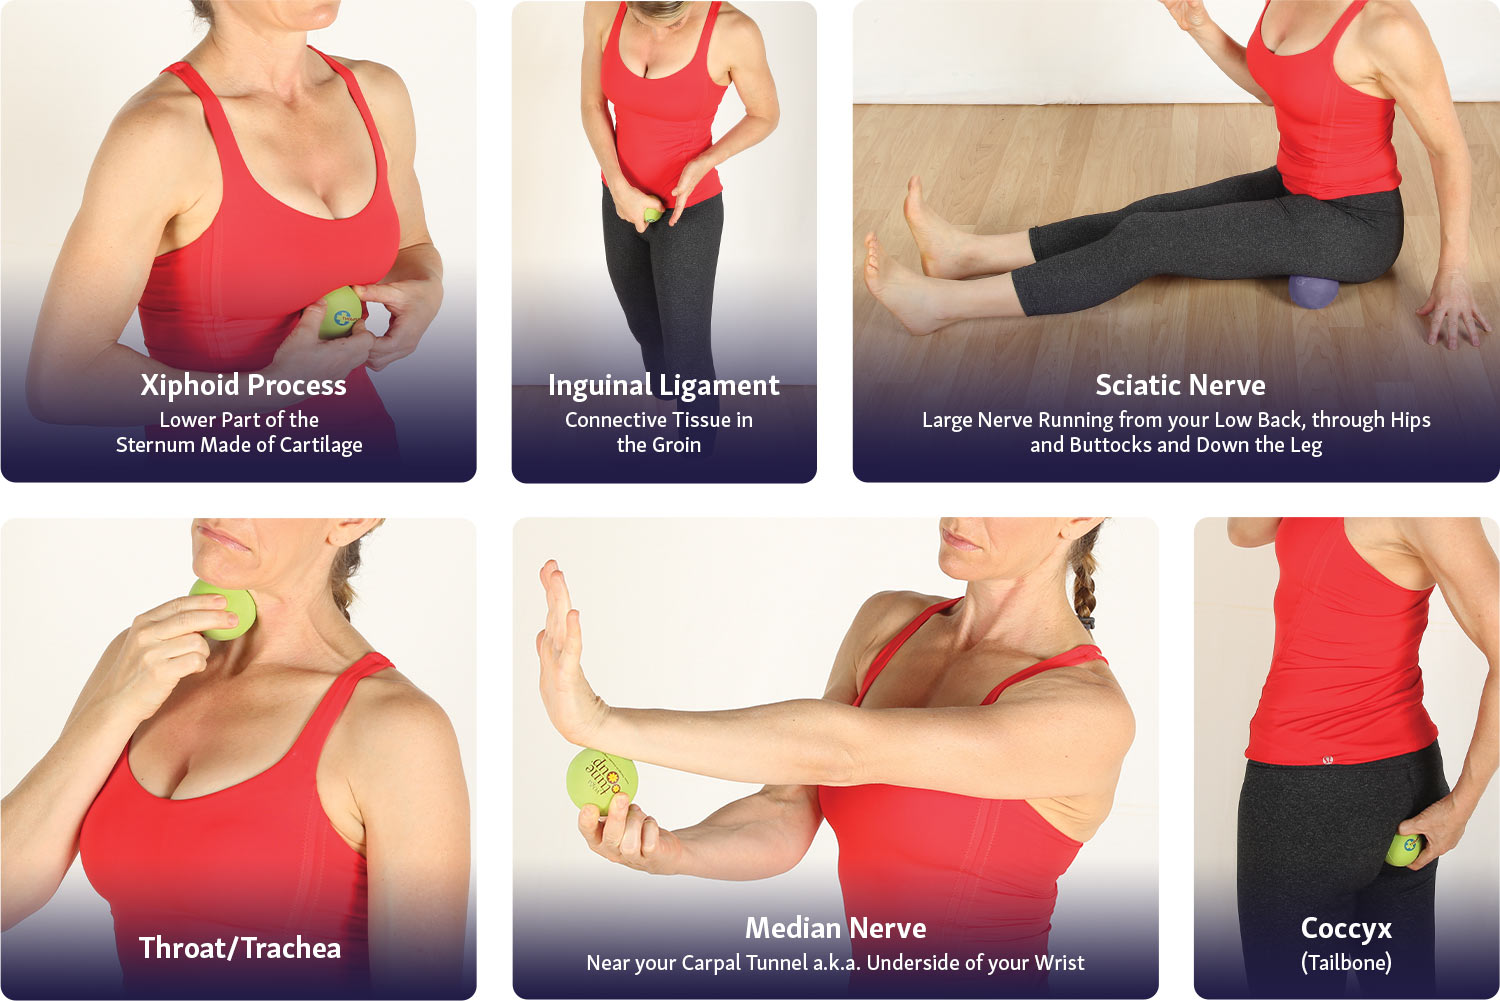 Areas on the body to avoid rolling with massage therapy balls.